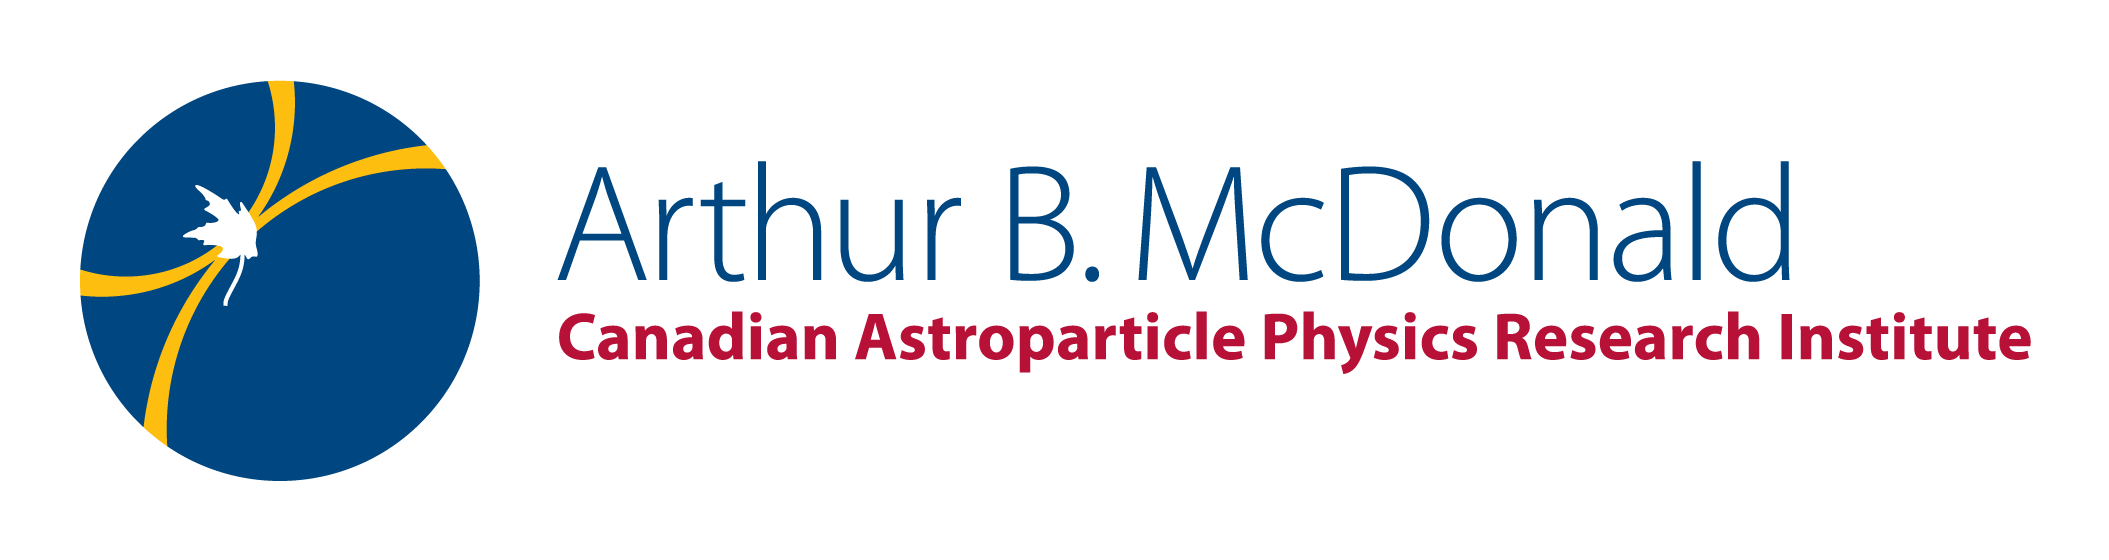 [Arthur B. McDonald Canadian Astroparticle Physics Institute - logo]